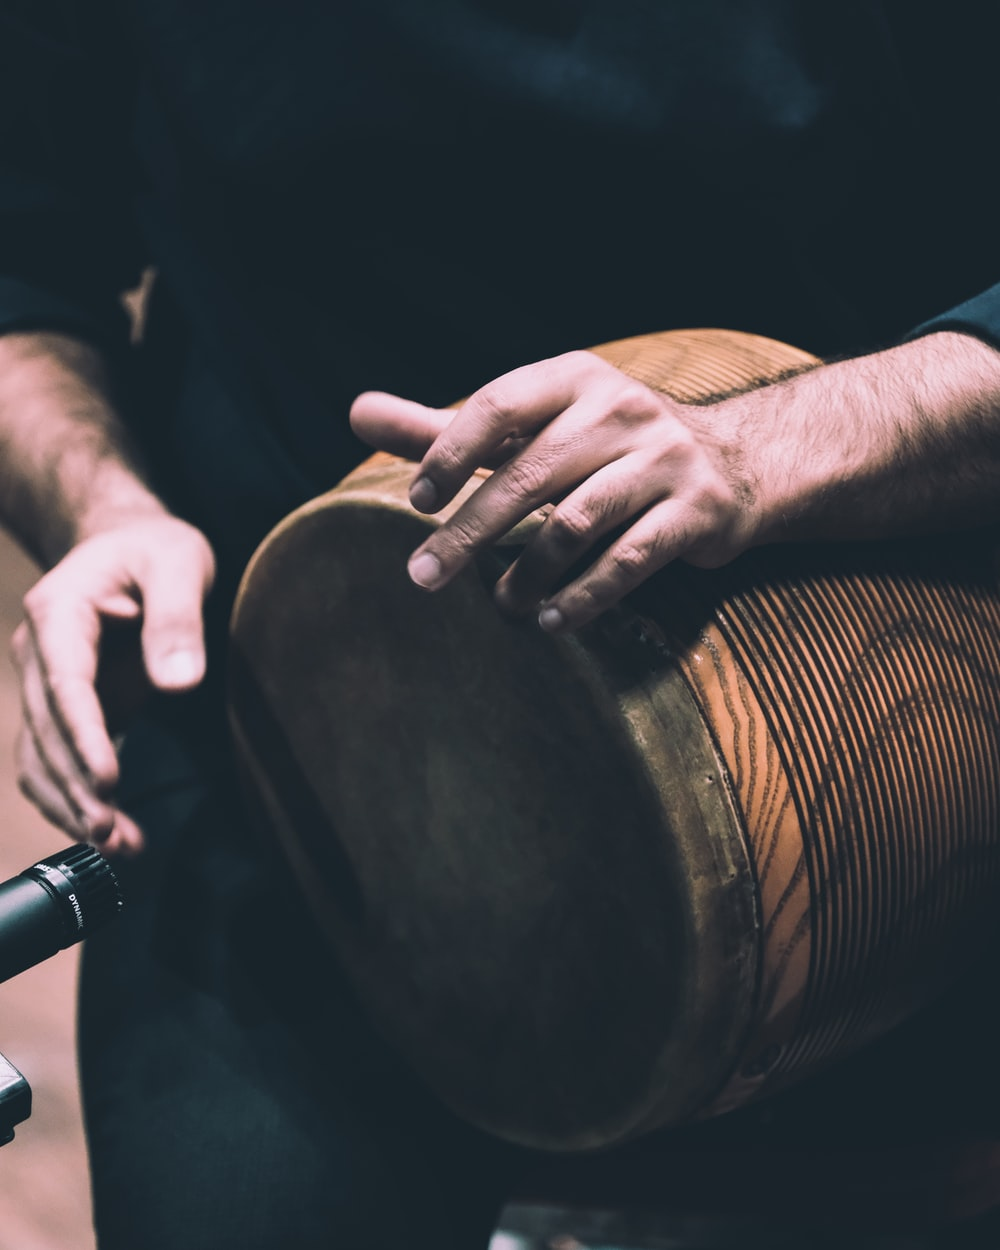 person in black shirt holding brown wooden drum